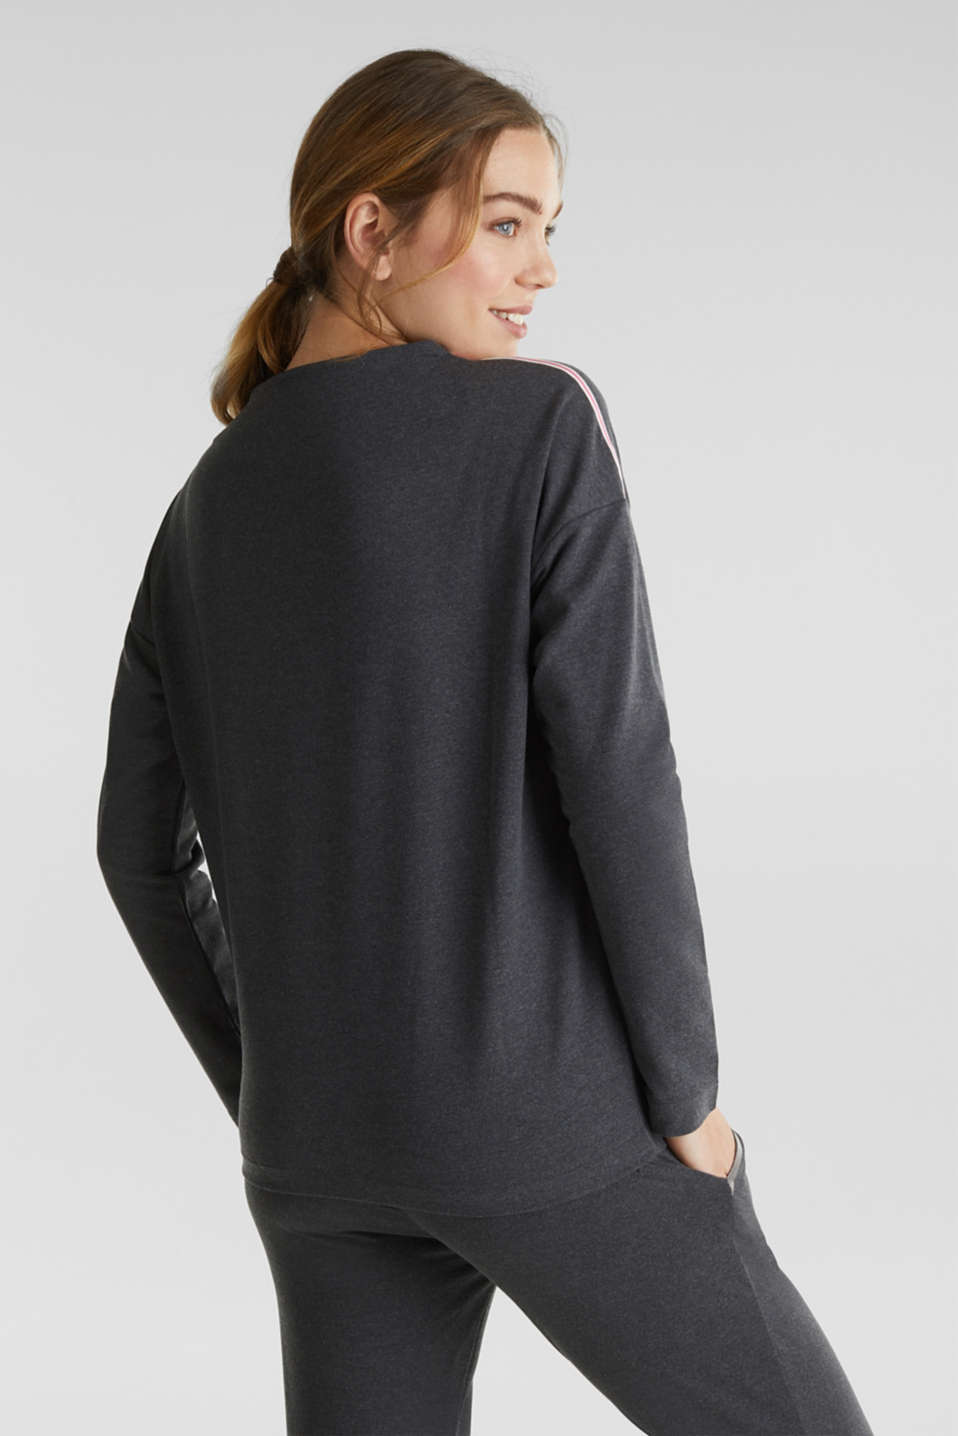 Lightweight sweatshirt with stripes and drawstring ties, ANTHRACITE 2, detail image number 3